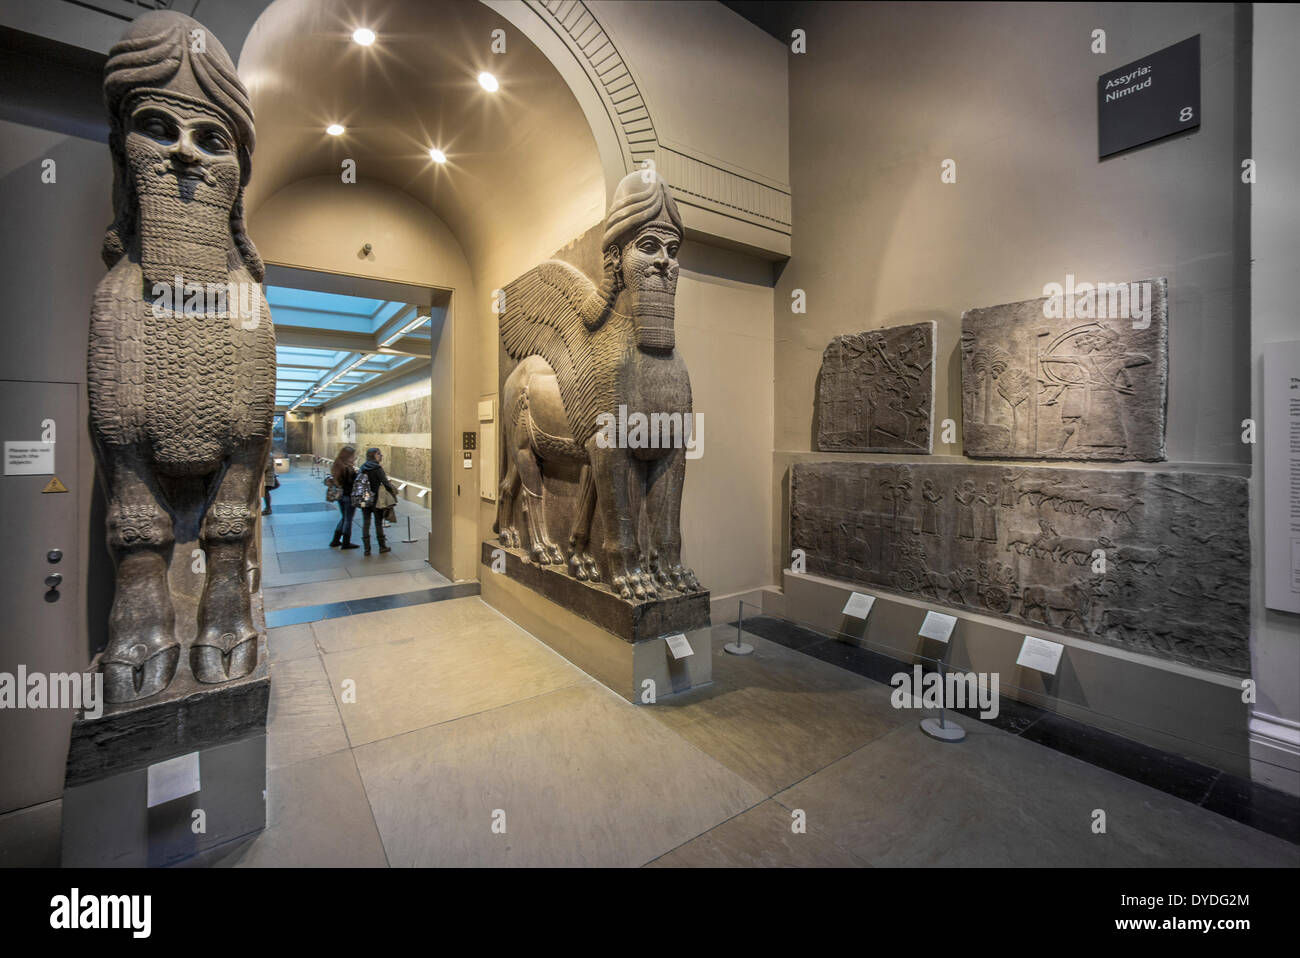 Egyptology in the British Museum. - Stock Image